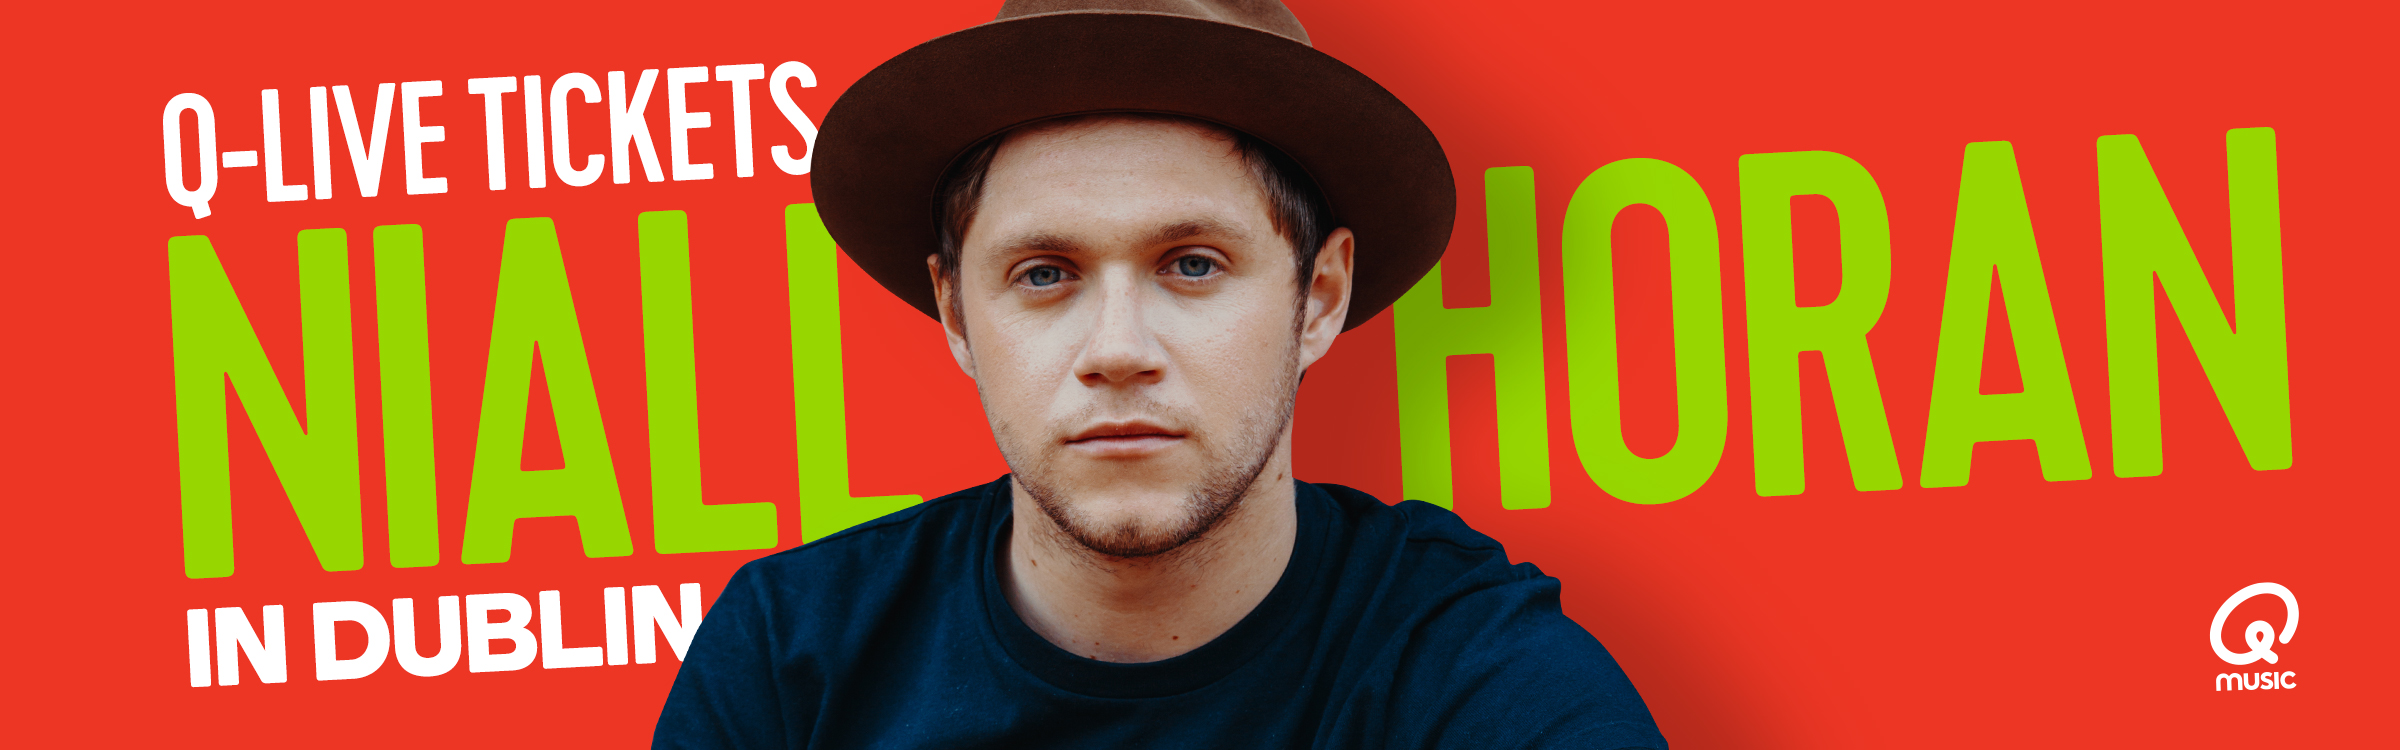 Qmusic actionheader niall